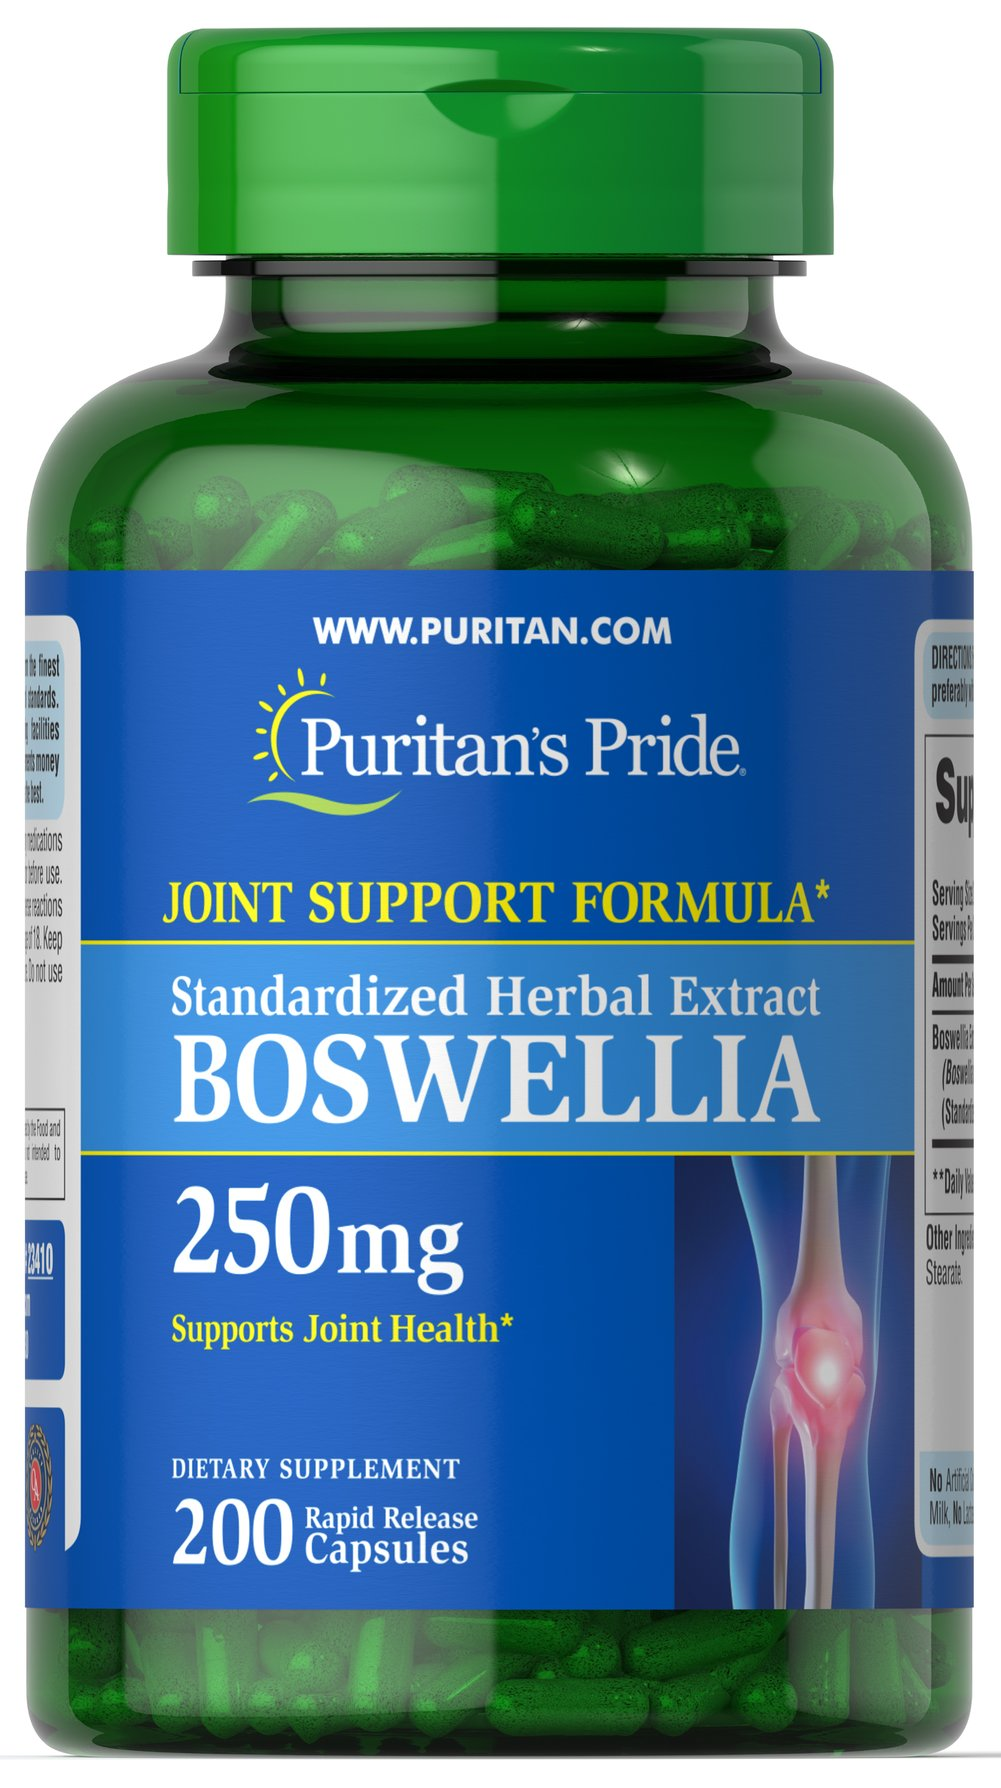 Boswellia Standardized Extract 250mg Thumbnail Alternate Bottle View